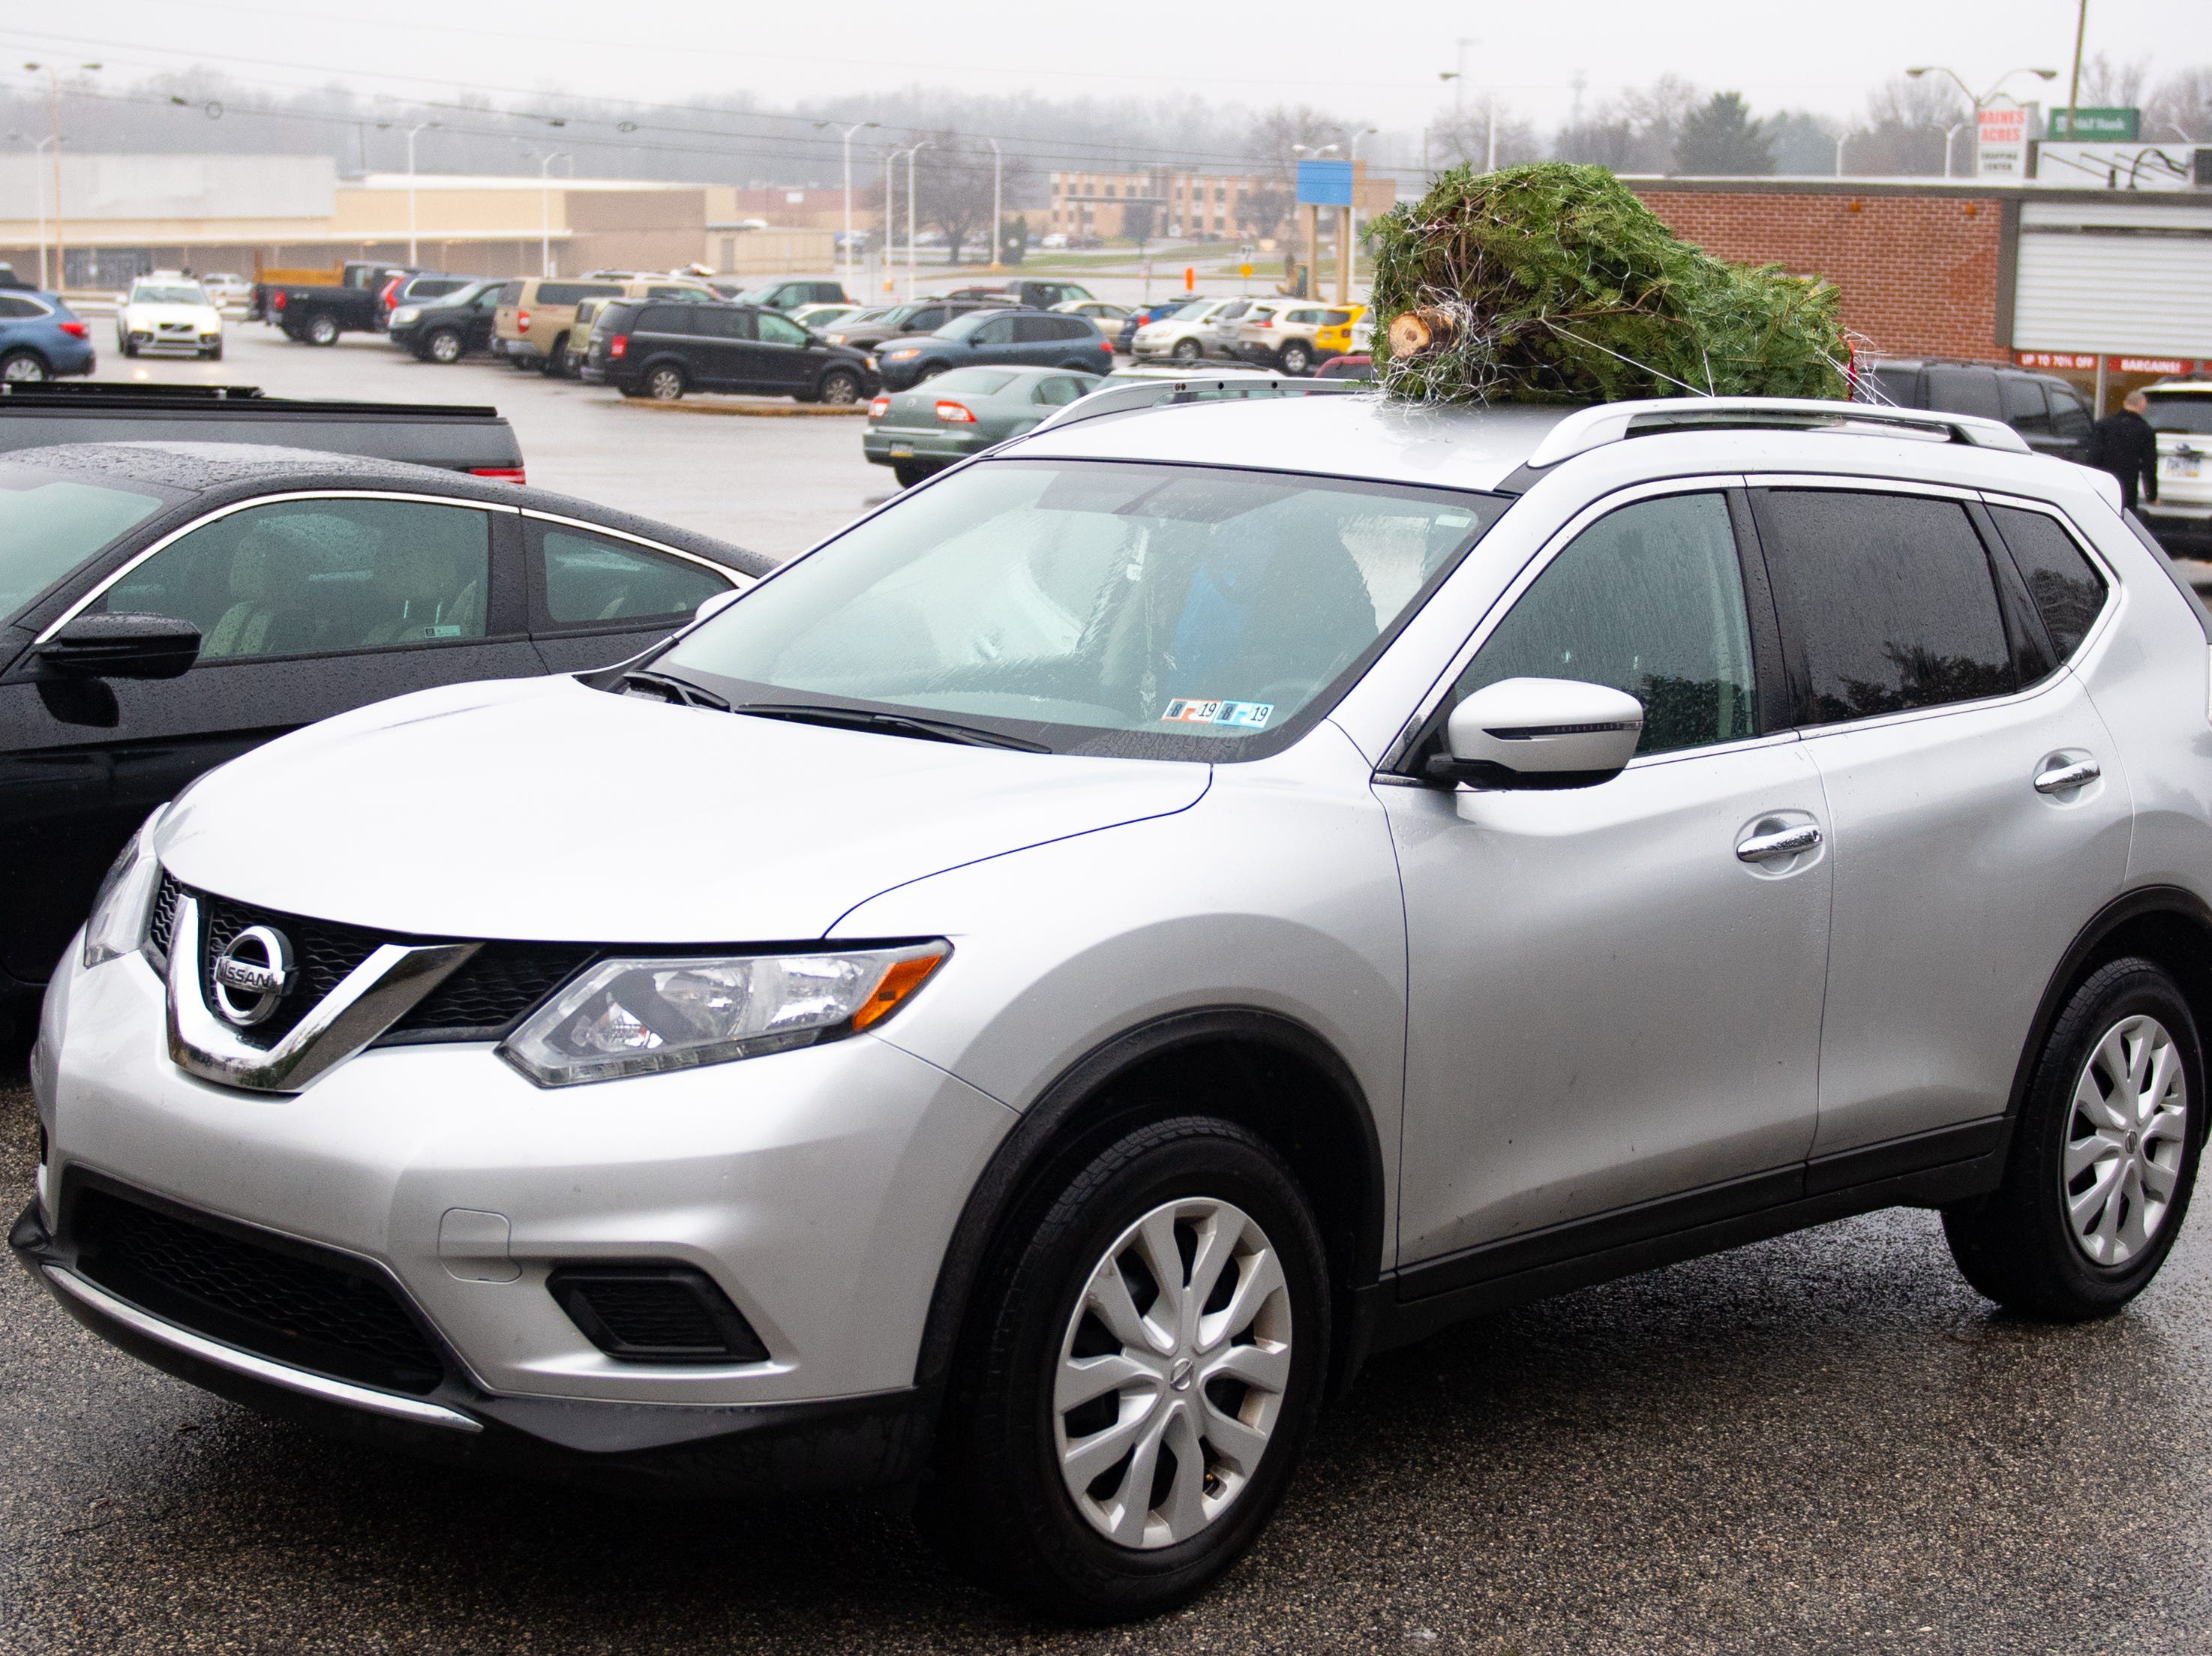 With the tree secured to the top of the SUV, the customers are all ready to go, December 15, 2018.